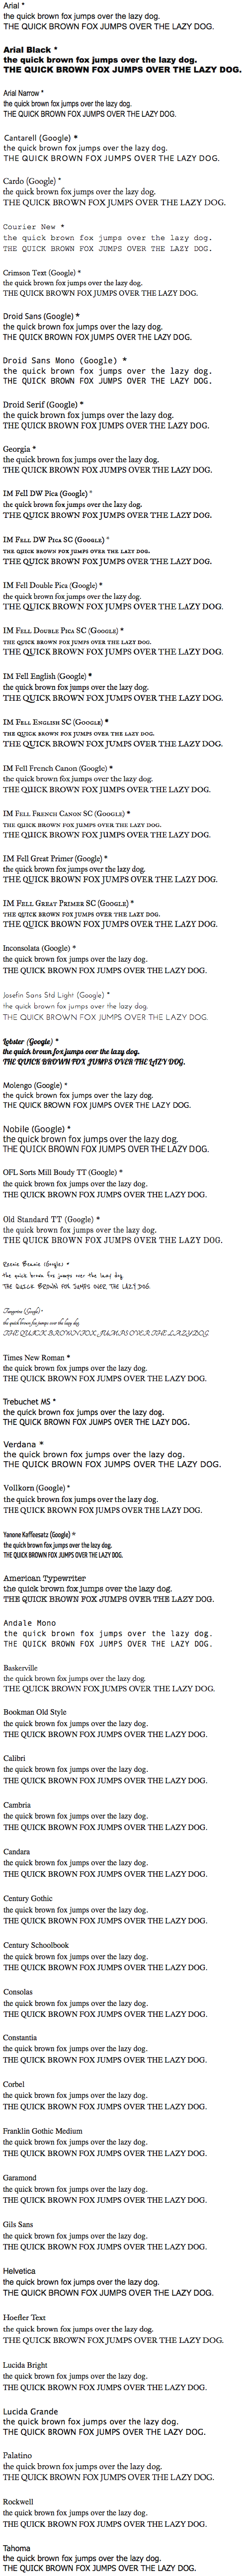 Thesis Font Faces and Google Web Fonts